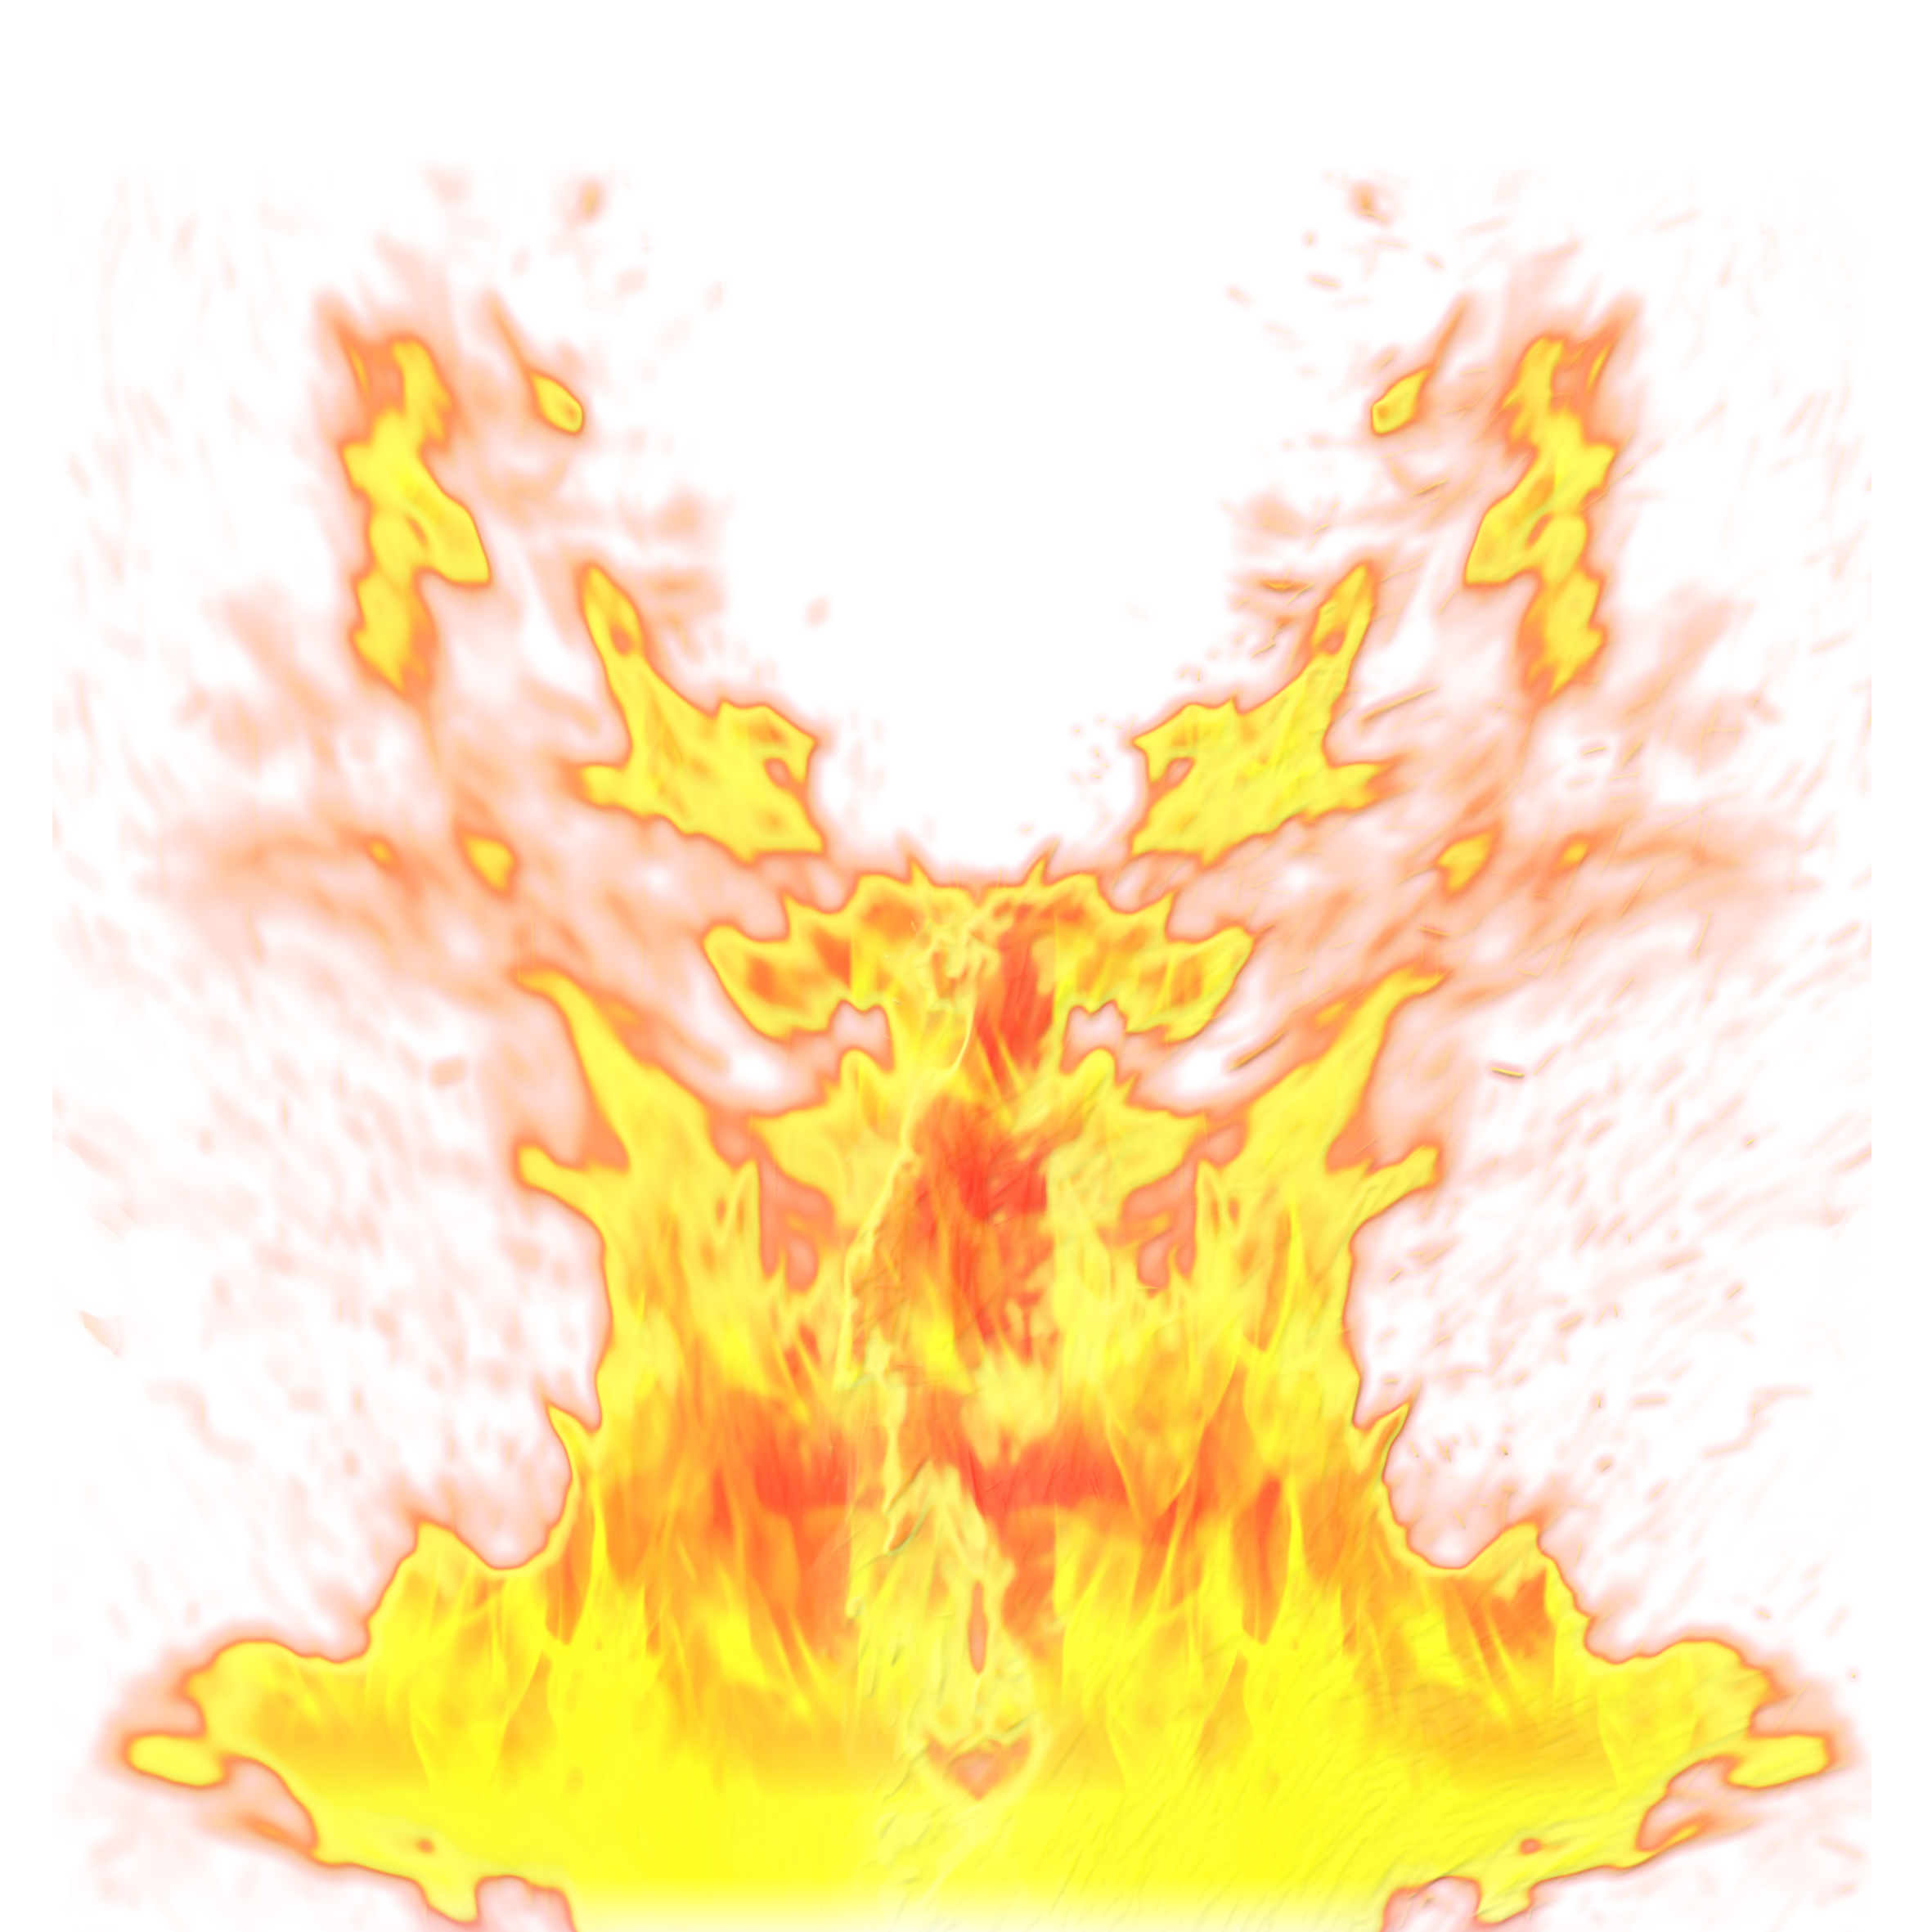 Fire Flame PNG Images Free Download Hd image #44300